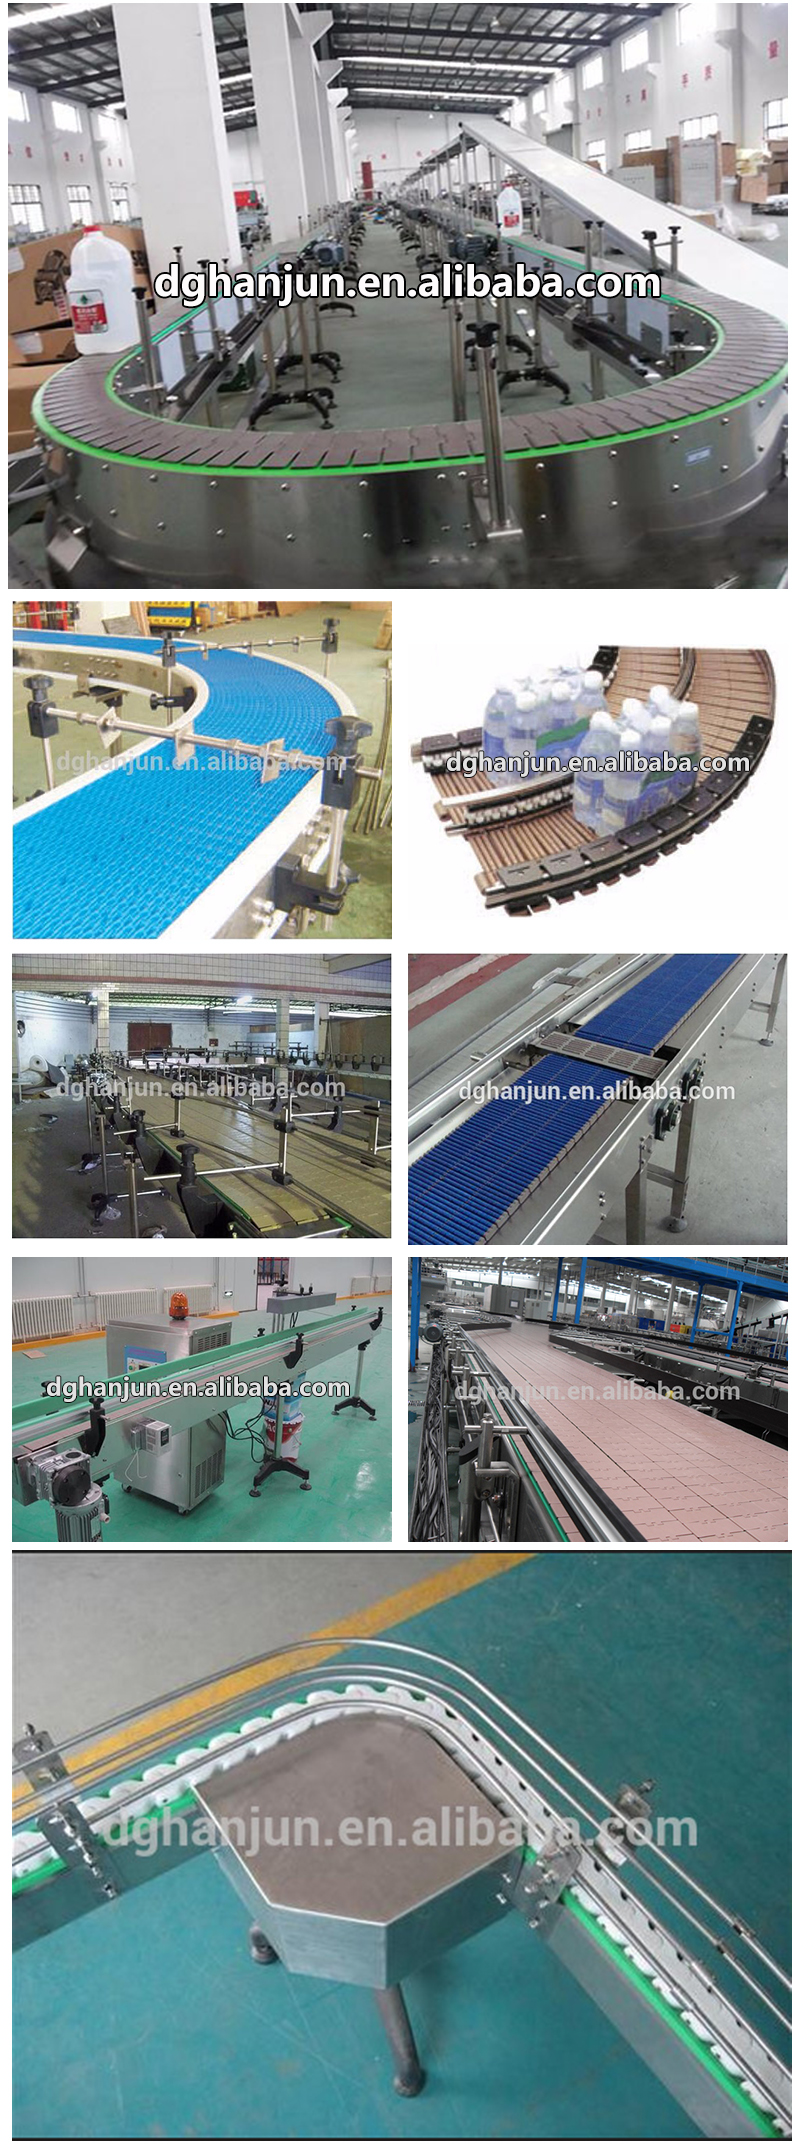 DHP antiskid conveyor belt replacement parts manufacturer for conveyor machine-6